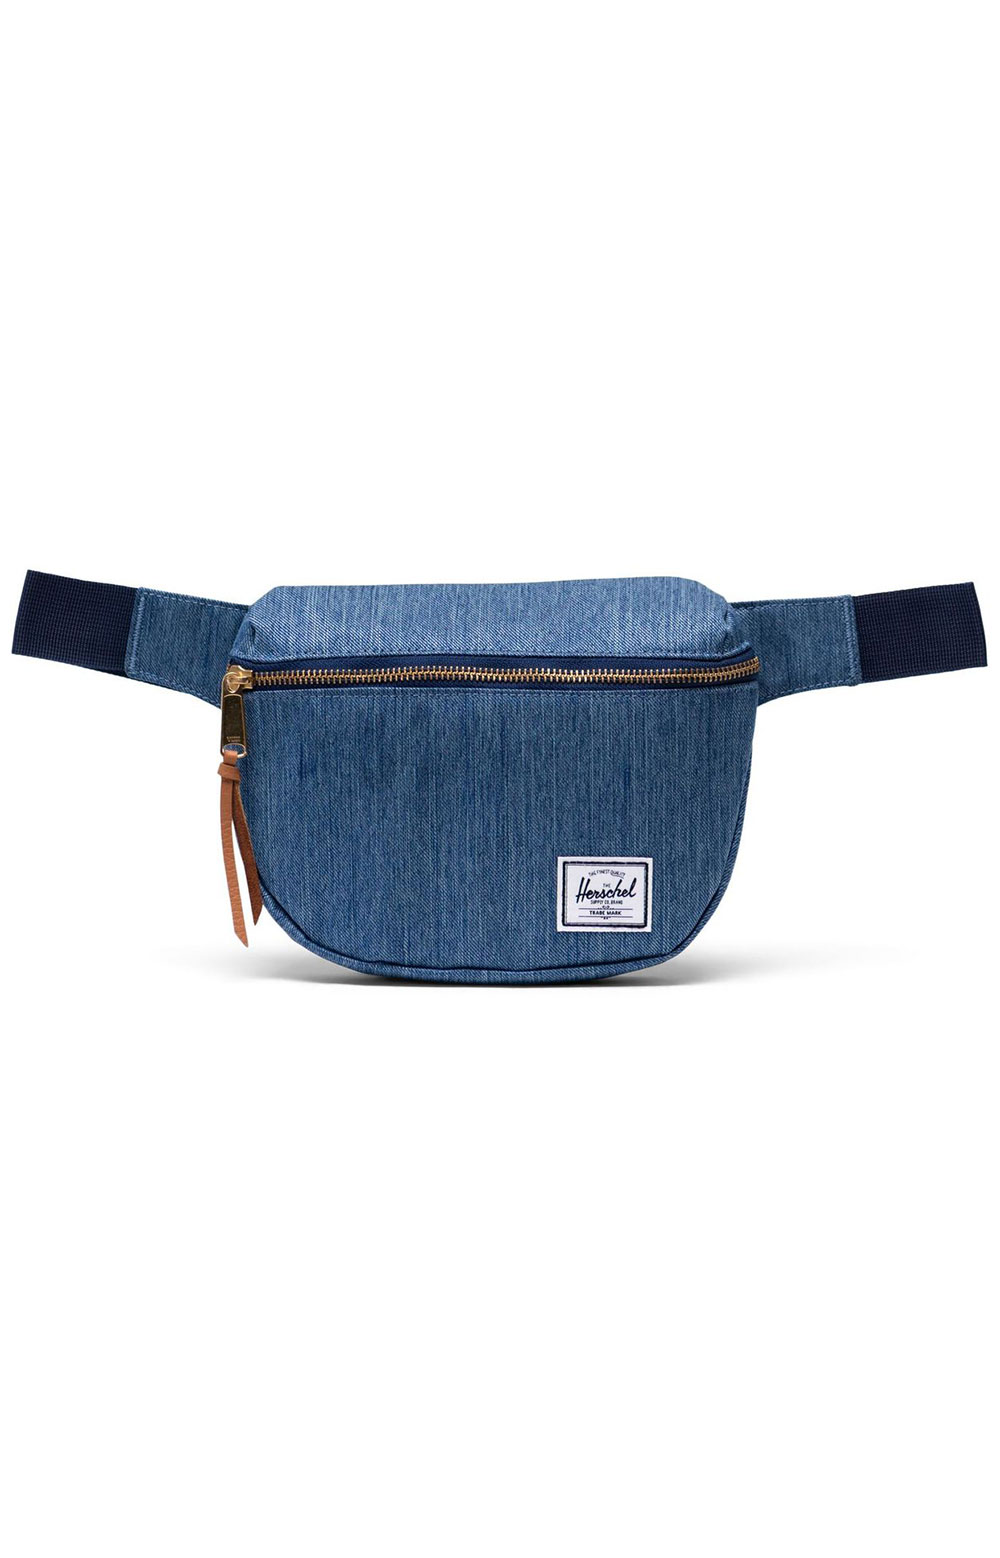 Fifteen Hip Pack - Faded Denim